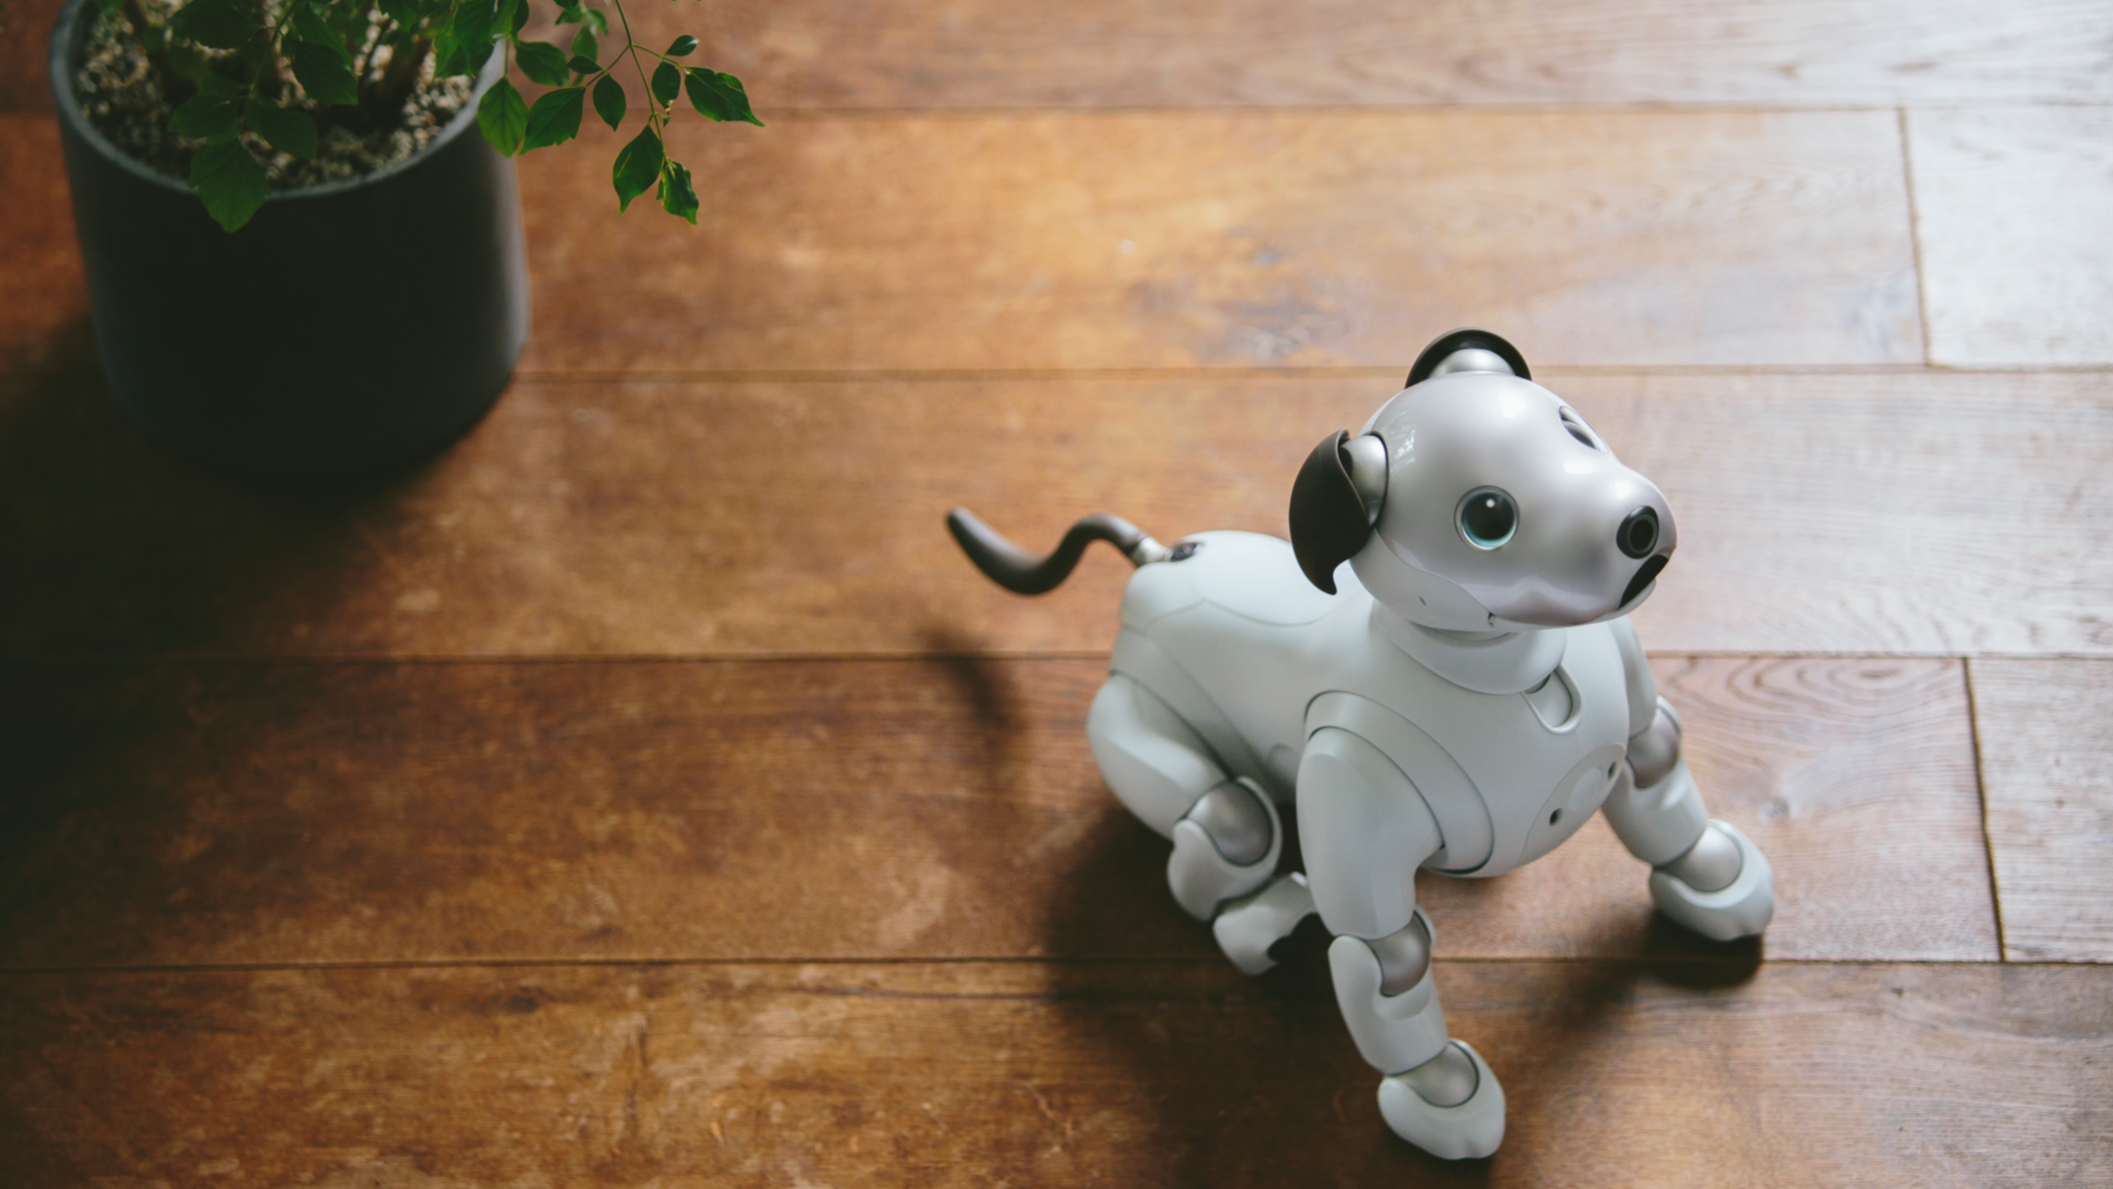 Update Pre Orders Open Sonys Robotic Puppy Aibo Is Coming To The